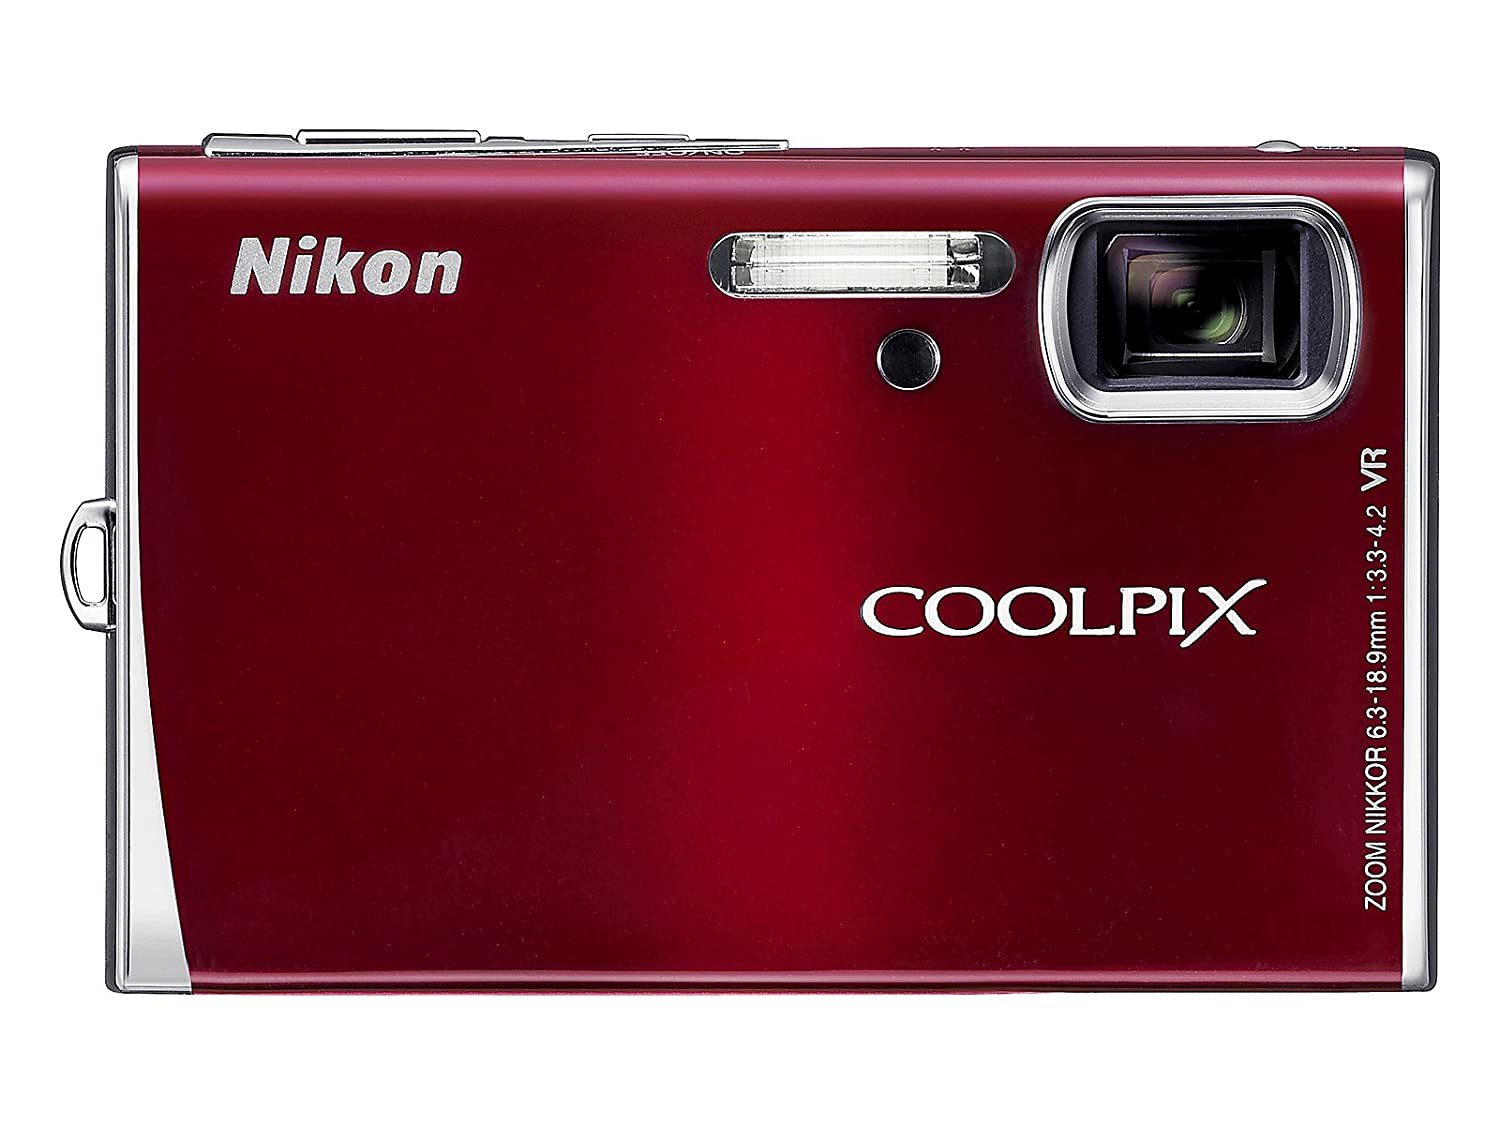 Nikon Coolpix S52 9MP Digital Camera Zoom with 3x Optical Vibration Reduction Zoom (Red)